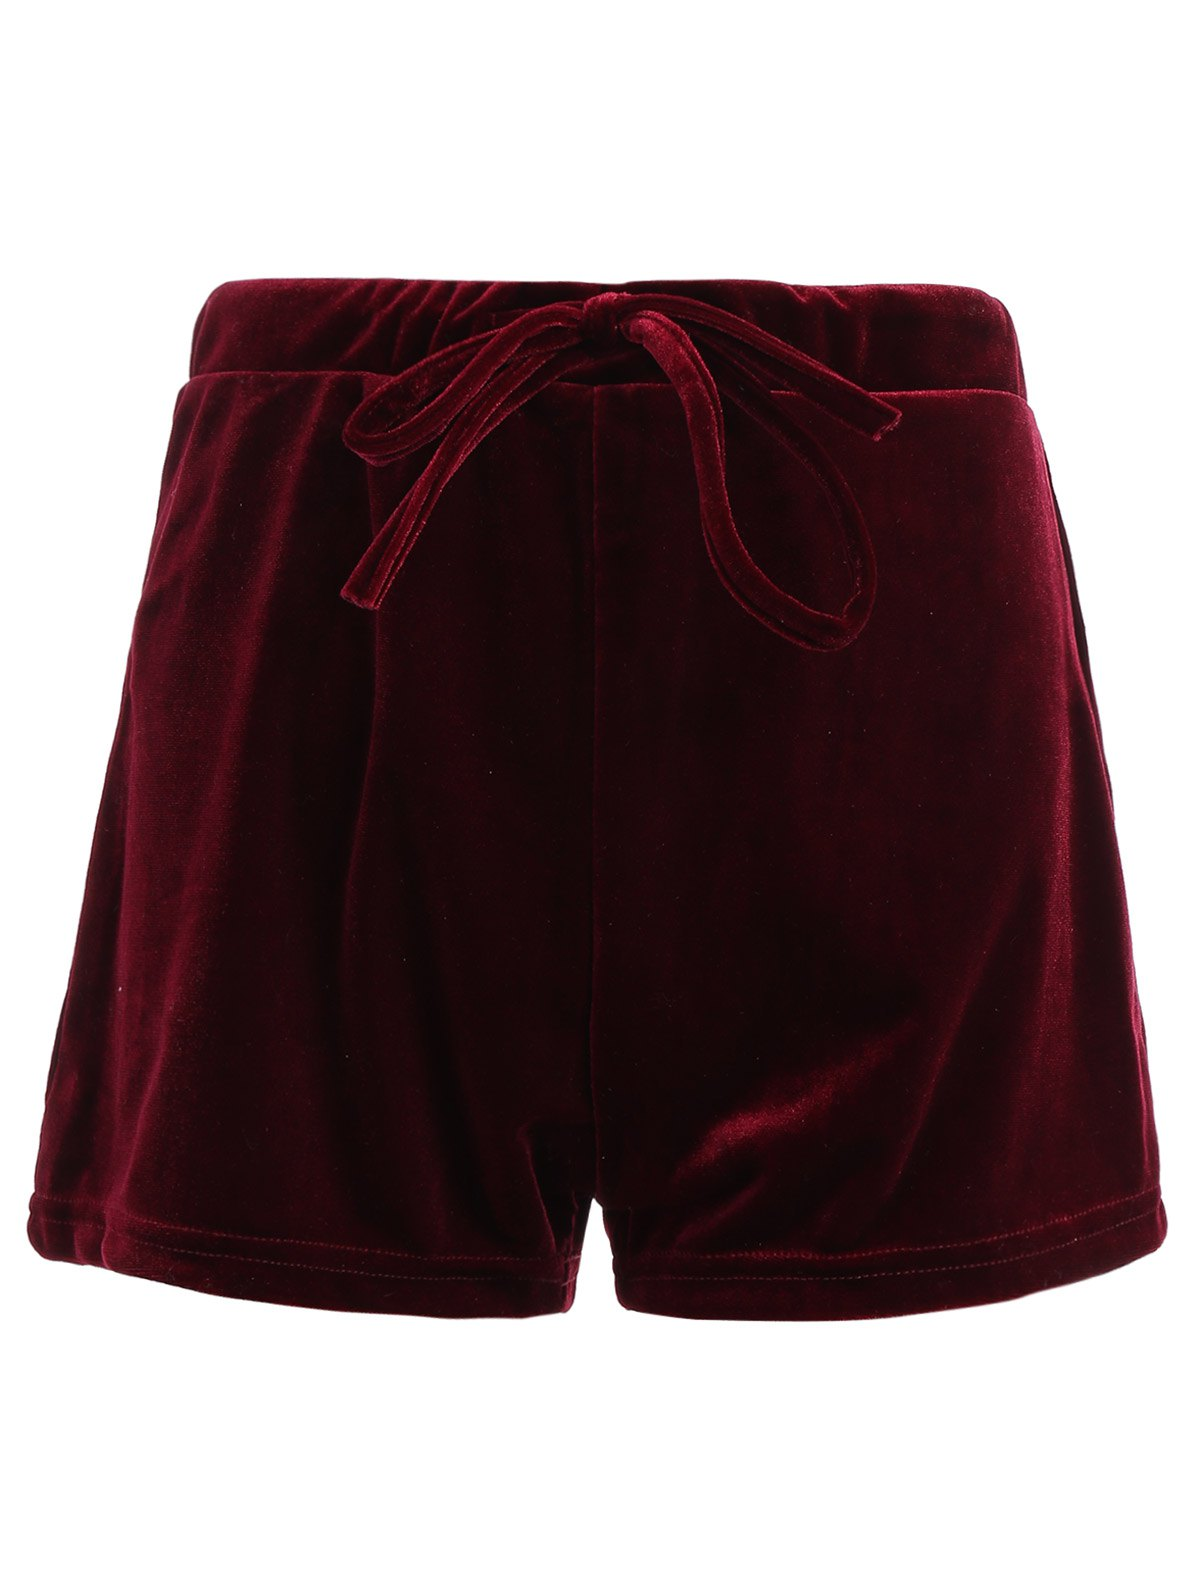 Drawstring Velevt Mini Shorts - WINE RED S